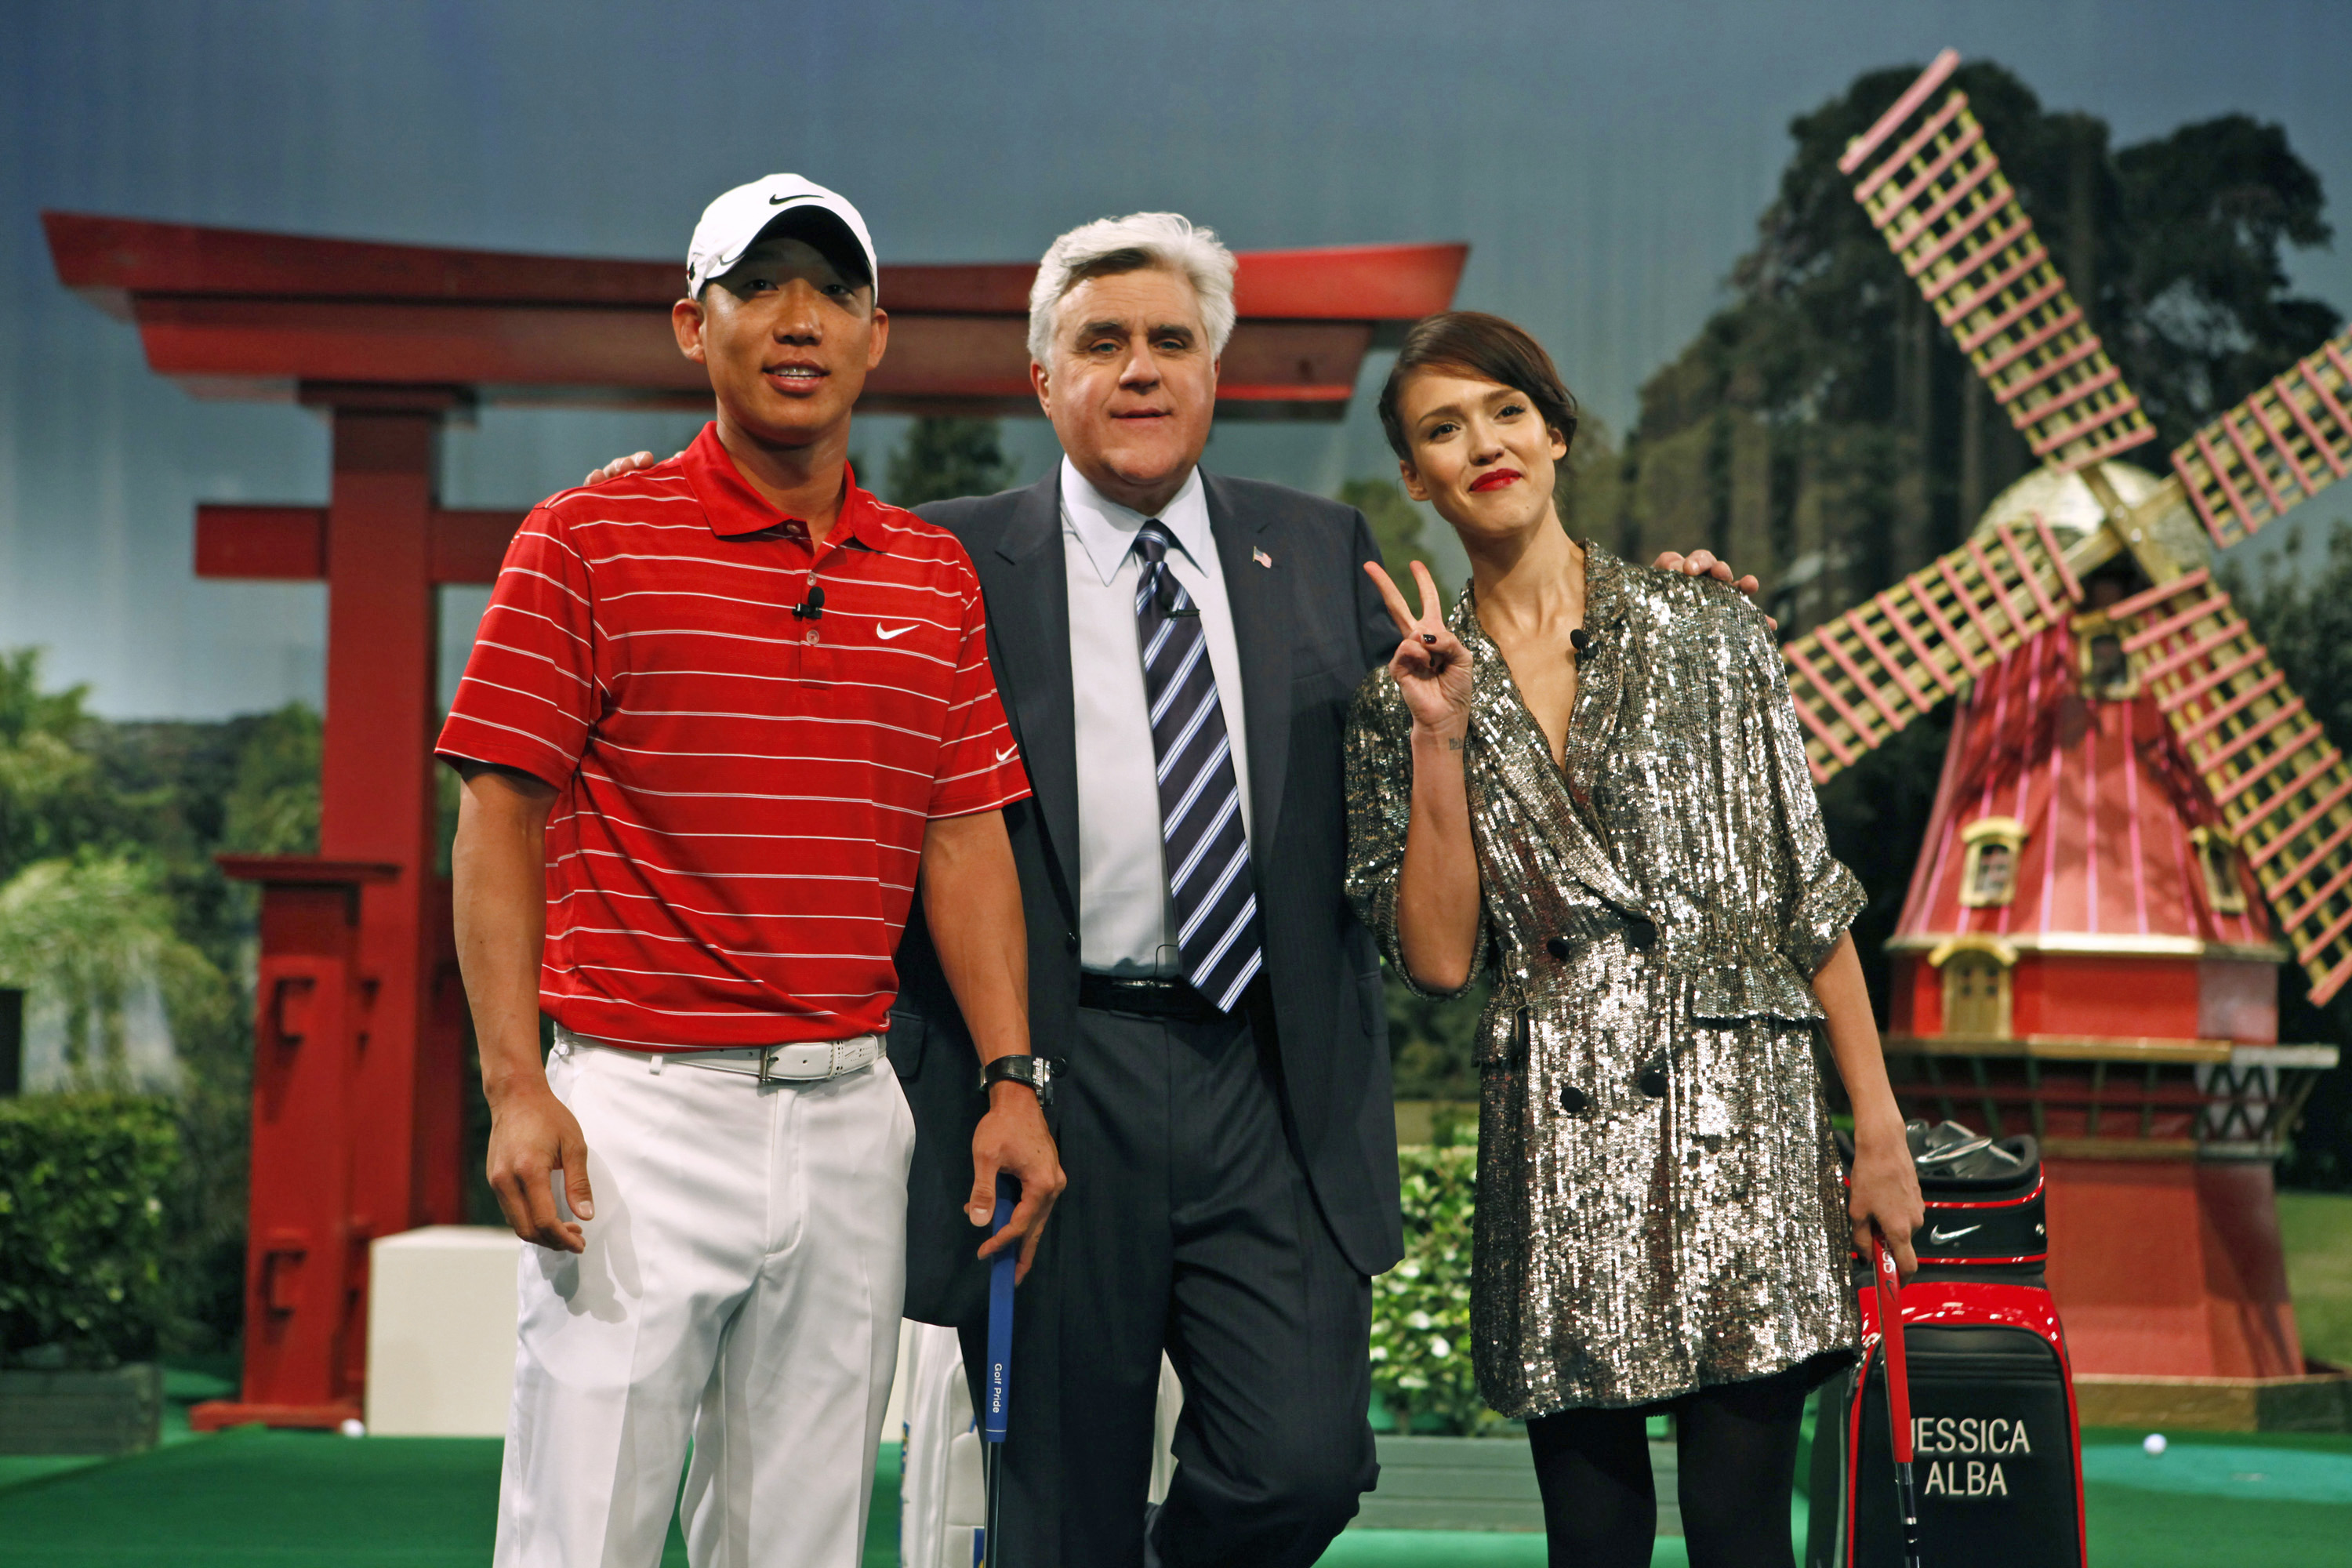 Anthony Kim with Jay Leno and Jessica Alba.